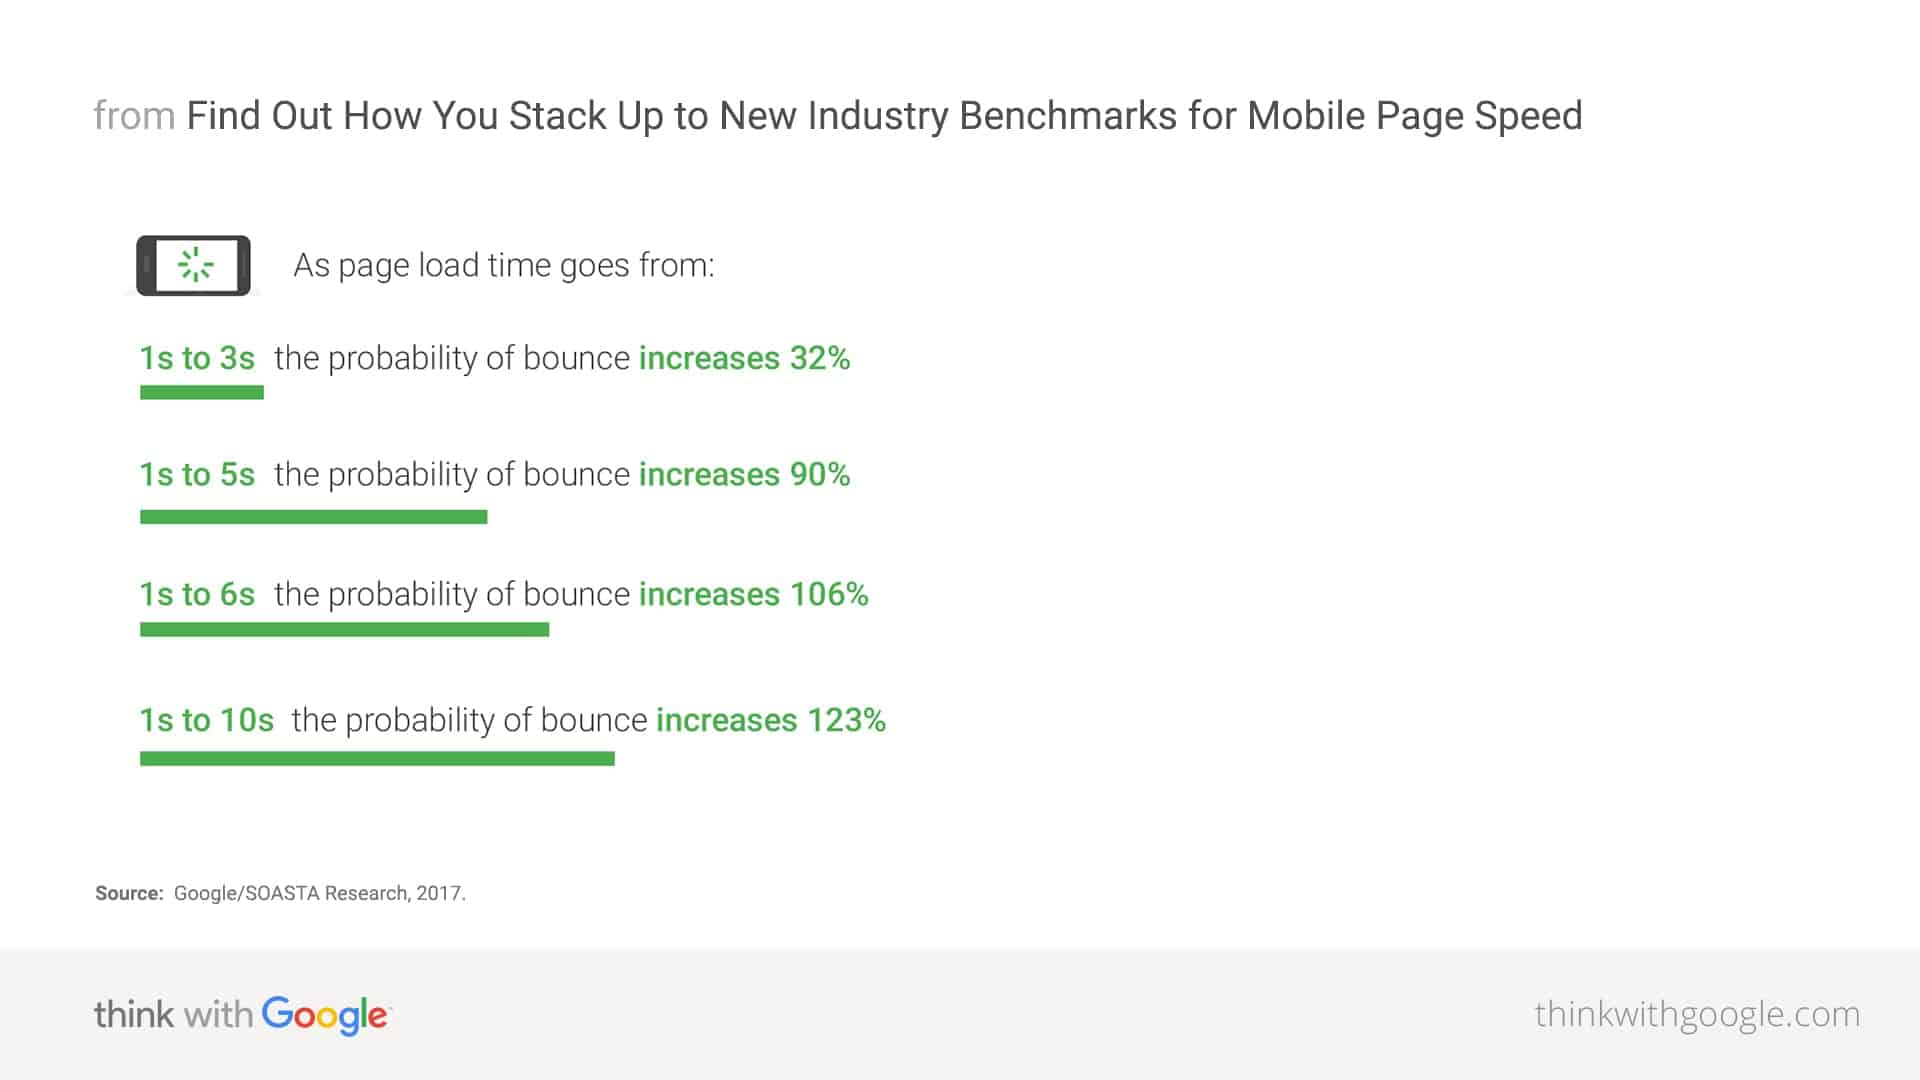 mobile page speed industry benchmarks